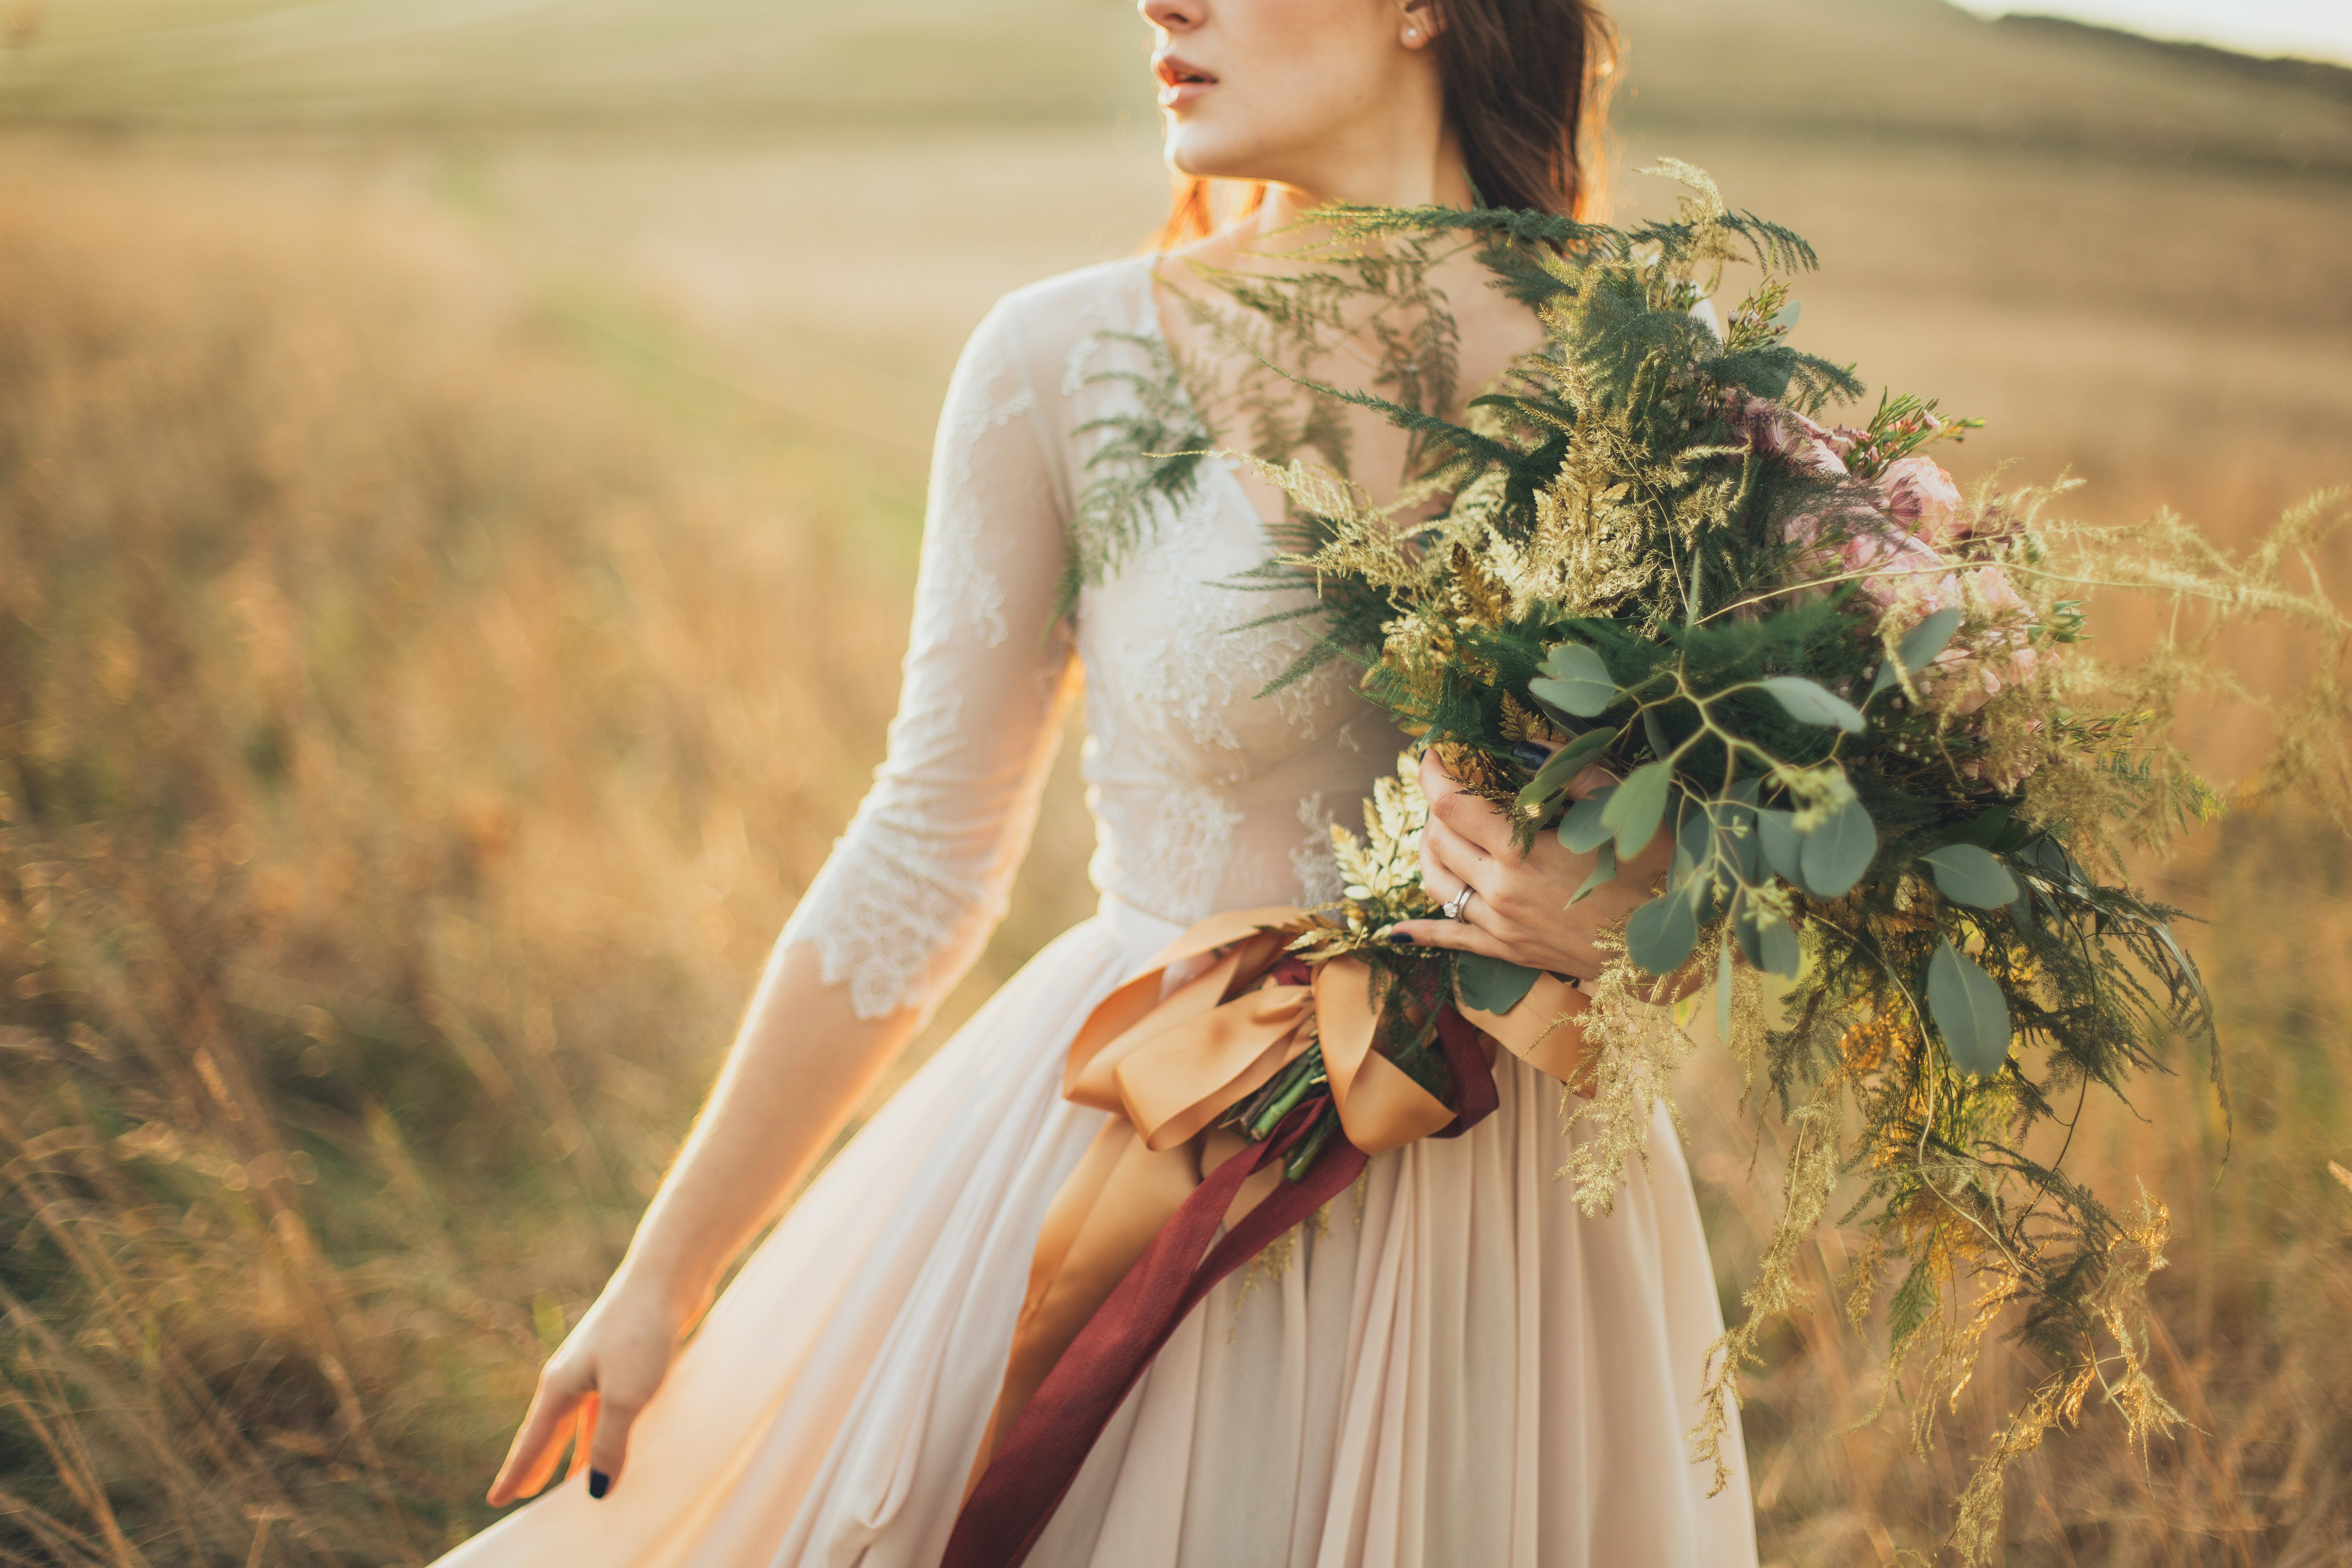 Woman Holding Bouquet In The Middle Of The Field